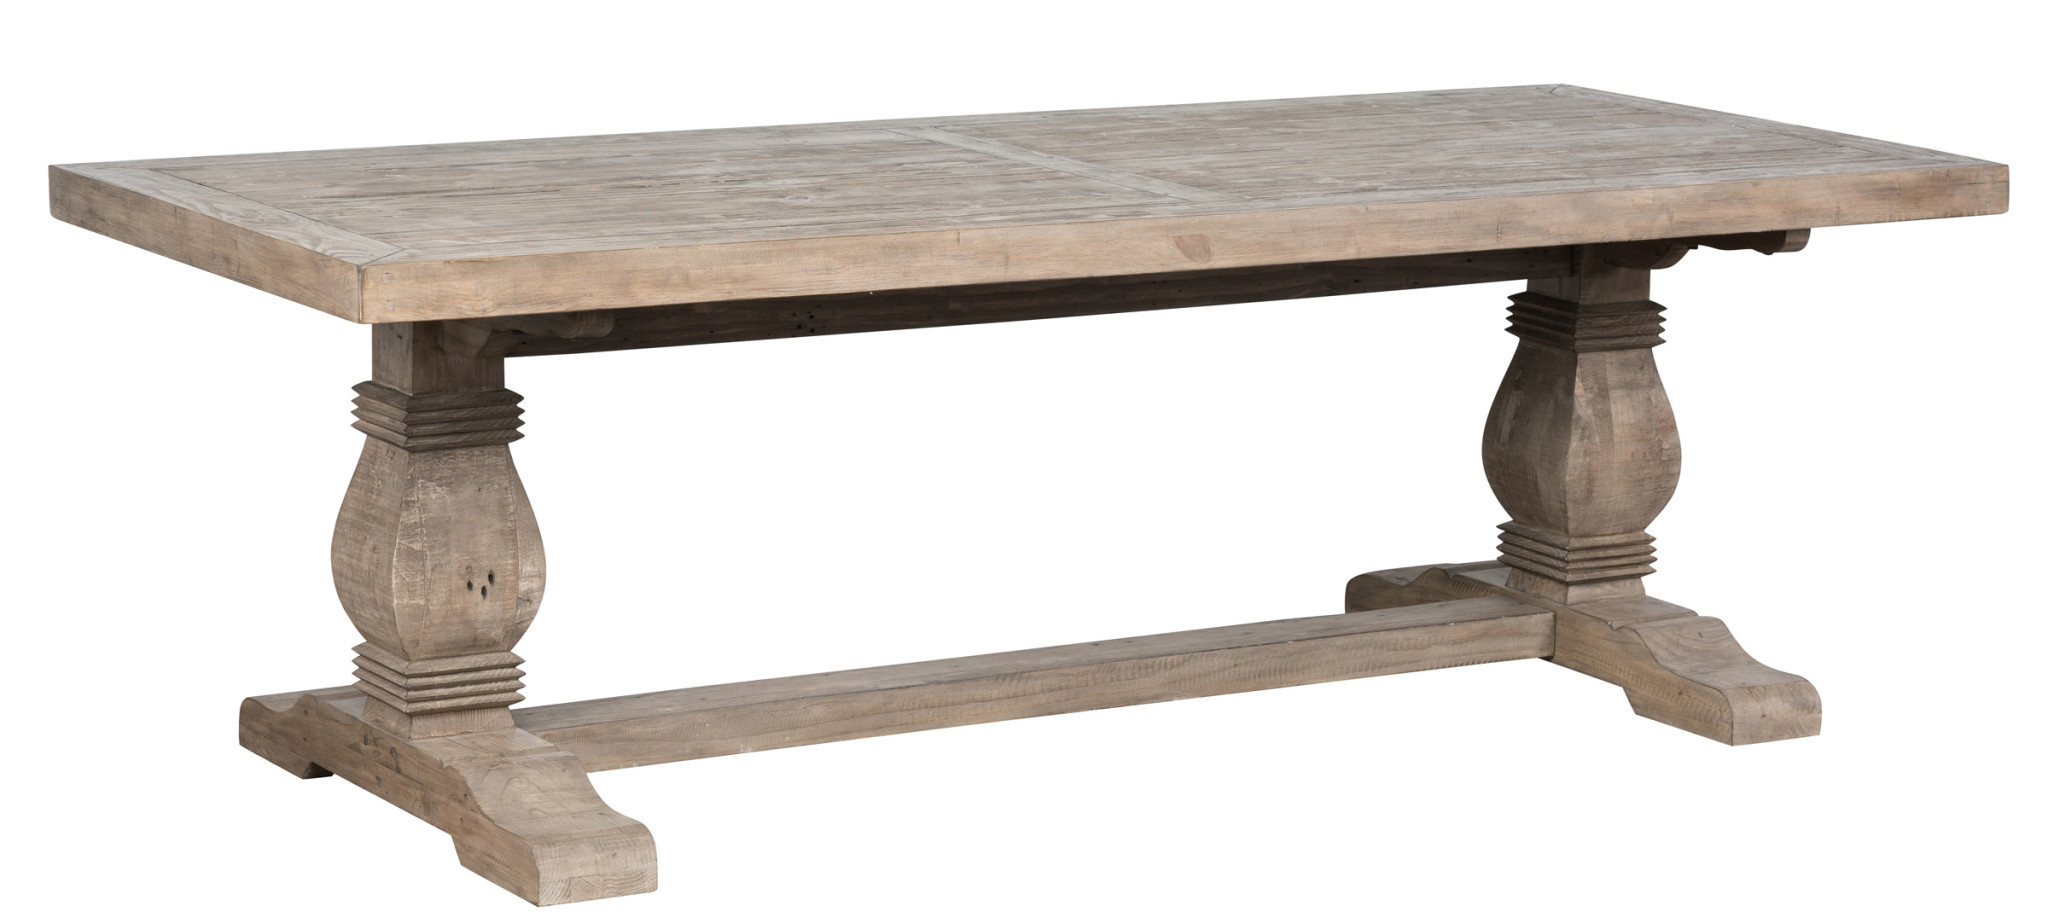 "CALEB 94"" TABLE - DESERT GREY"